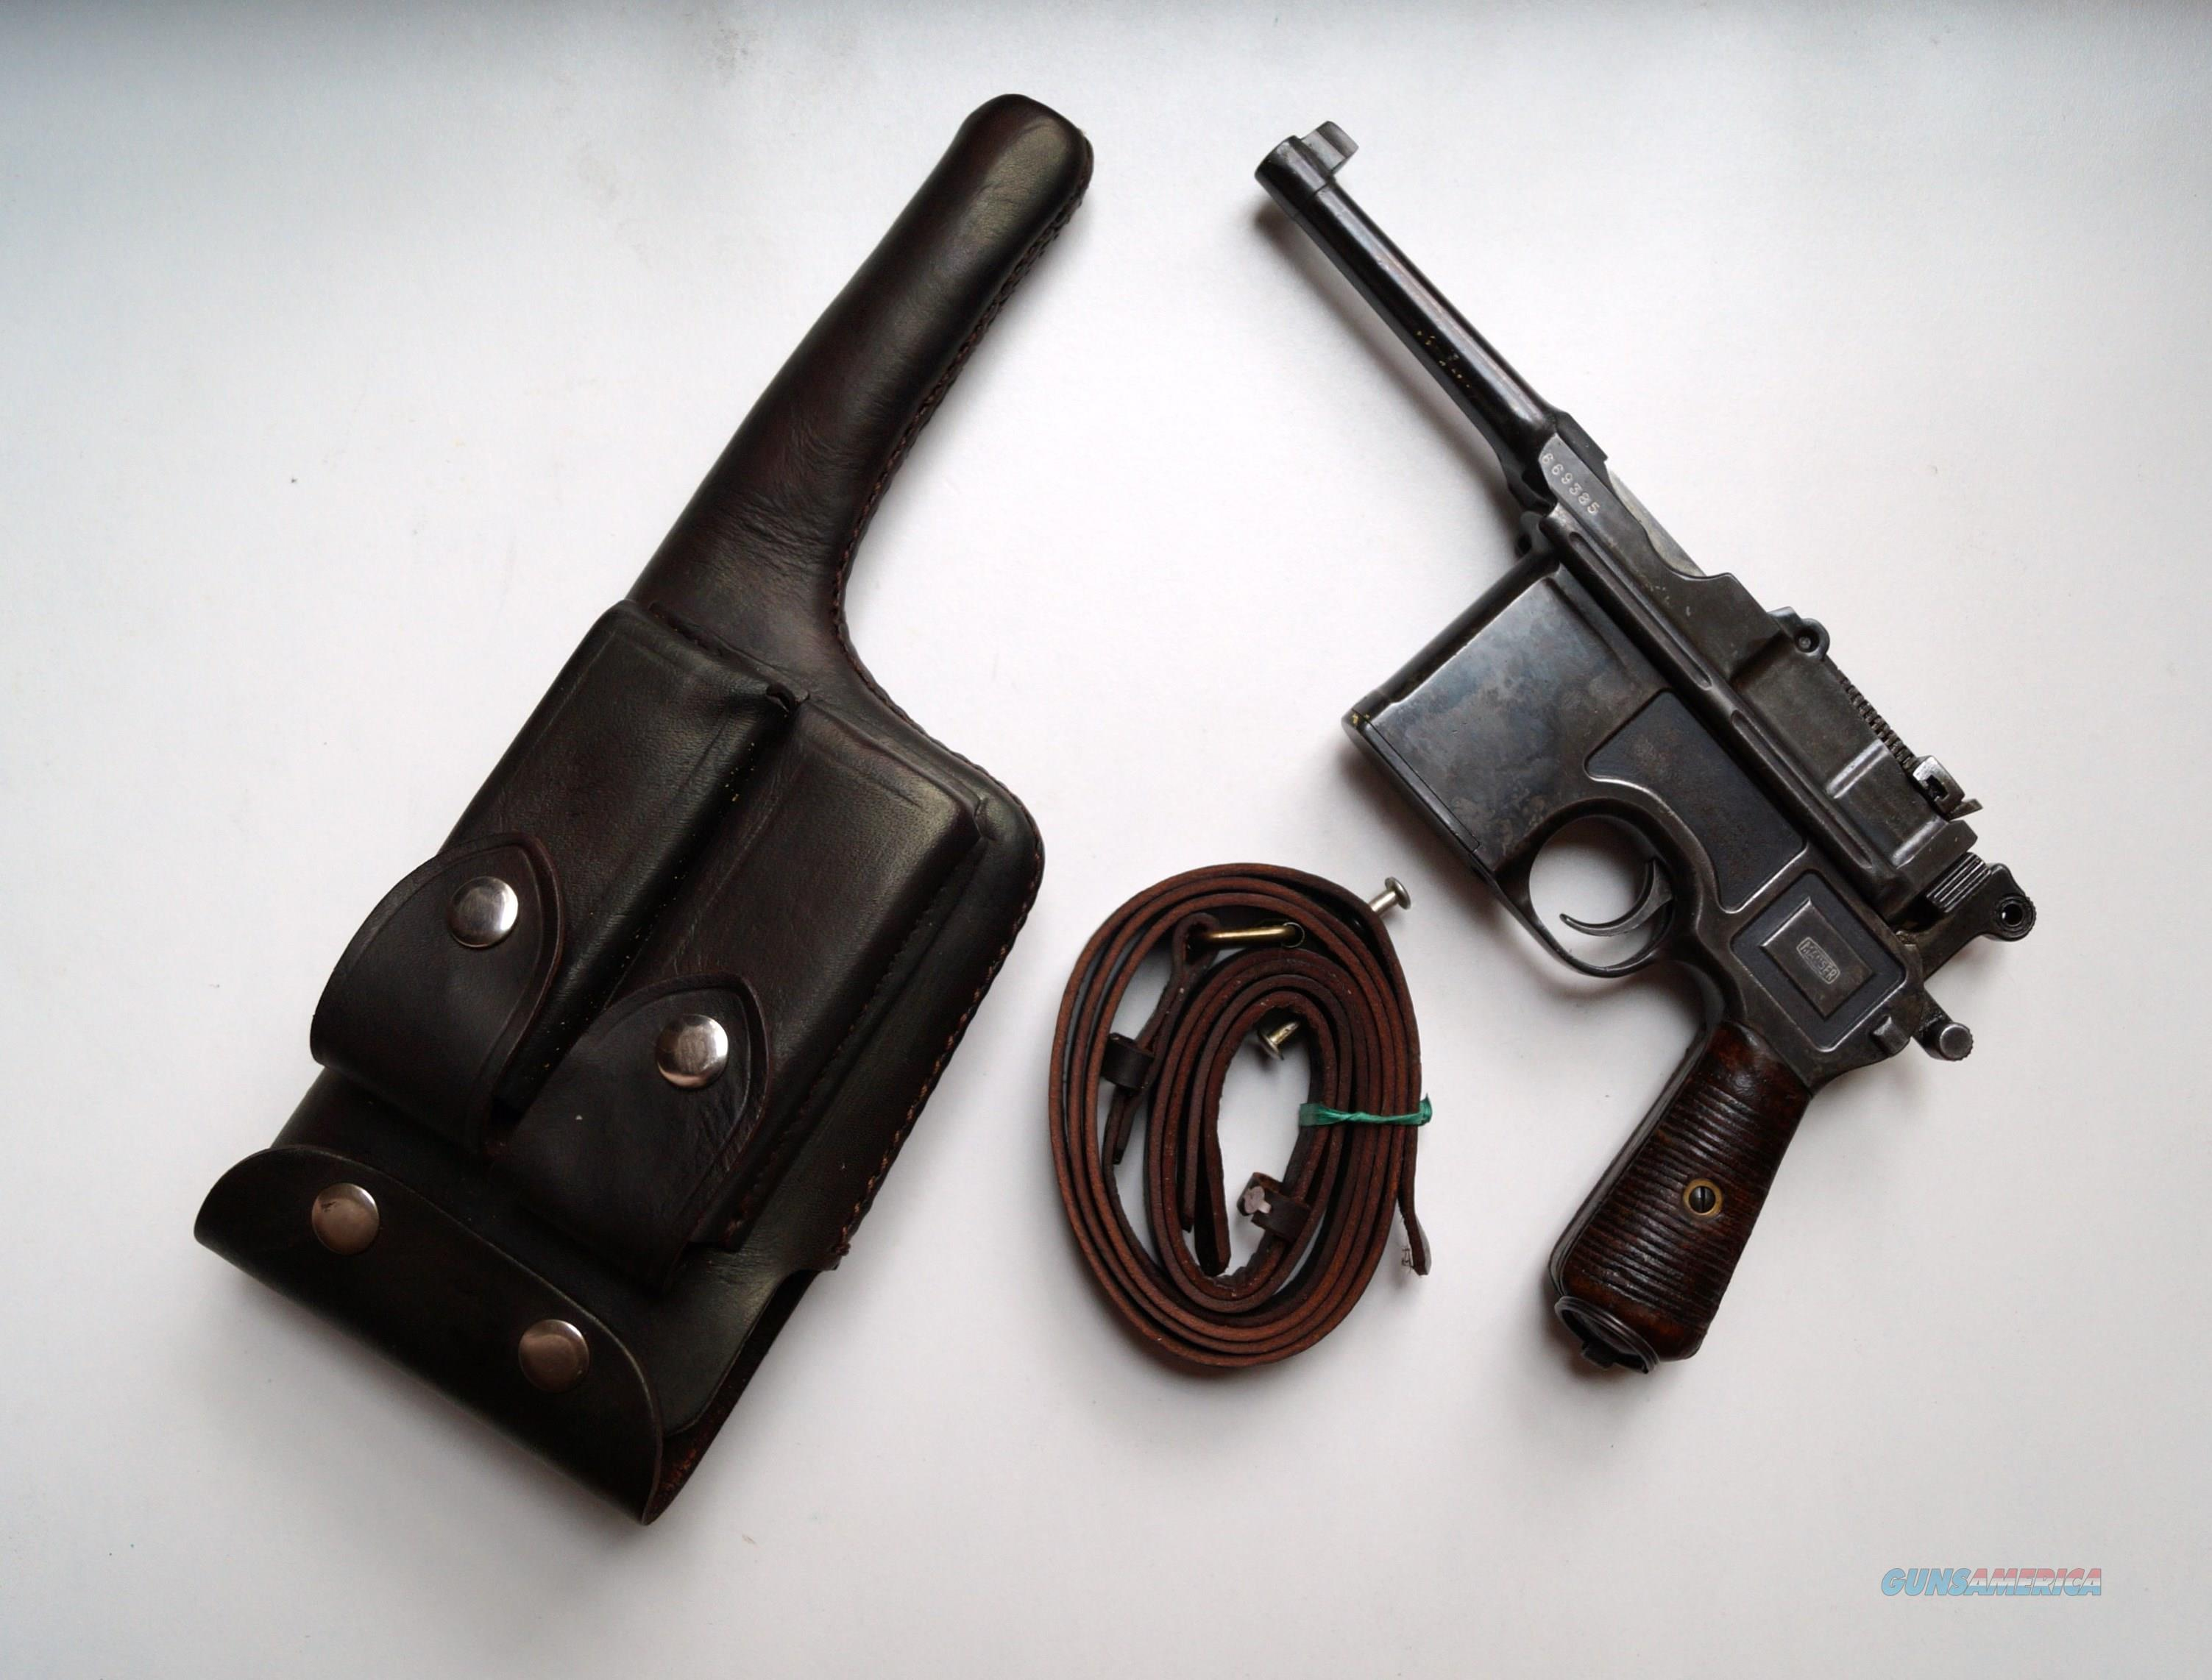 MAUSER BOLO BROOMHANDLE WITH ORIGINAL HOLSTER  Guns > Pistols > Mauser Pistols